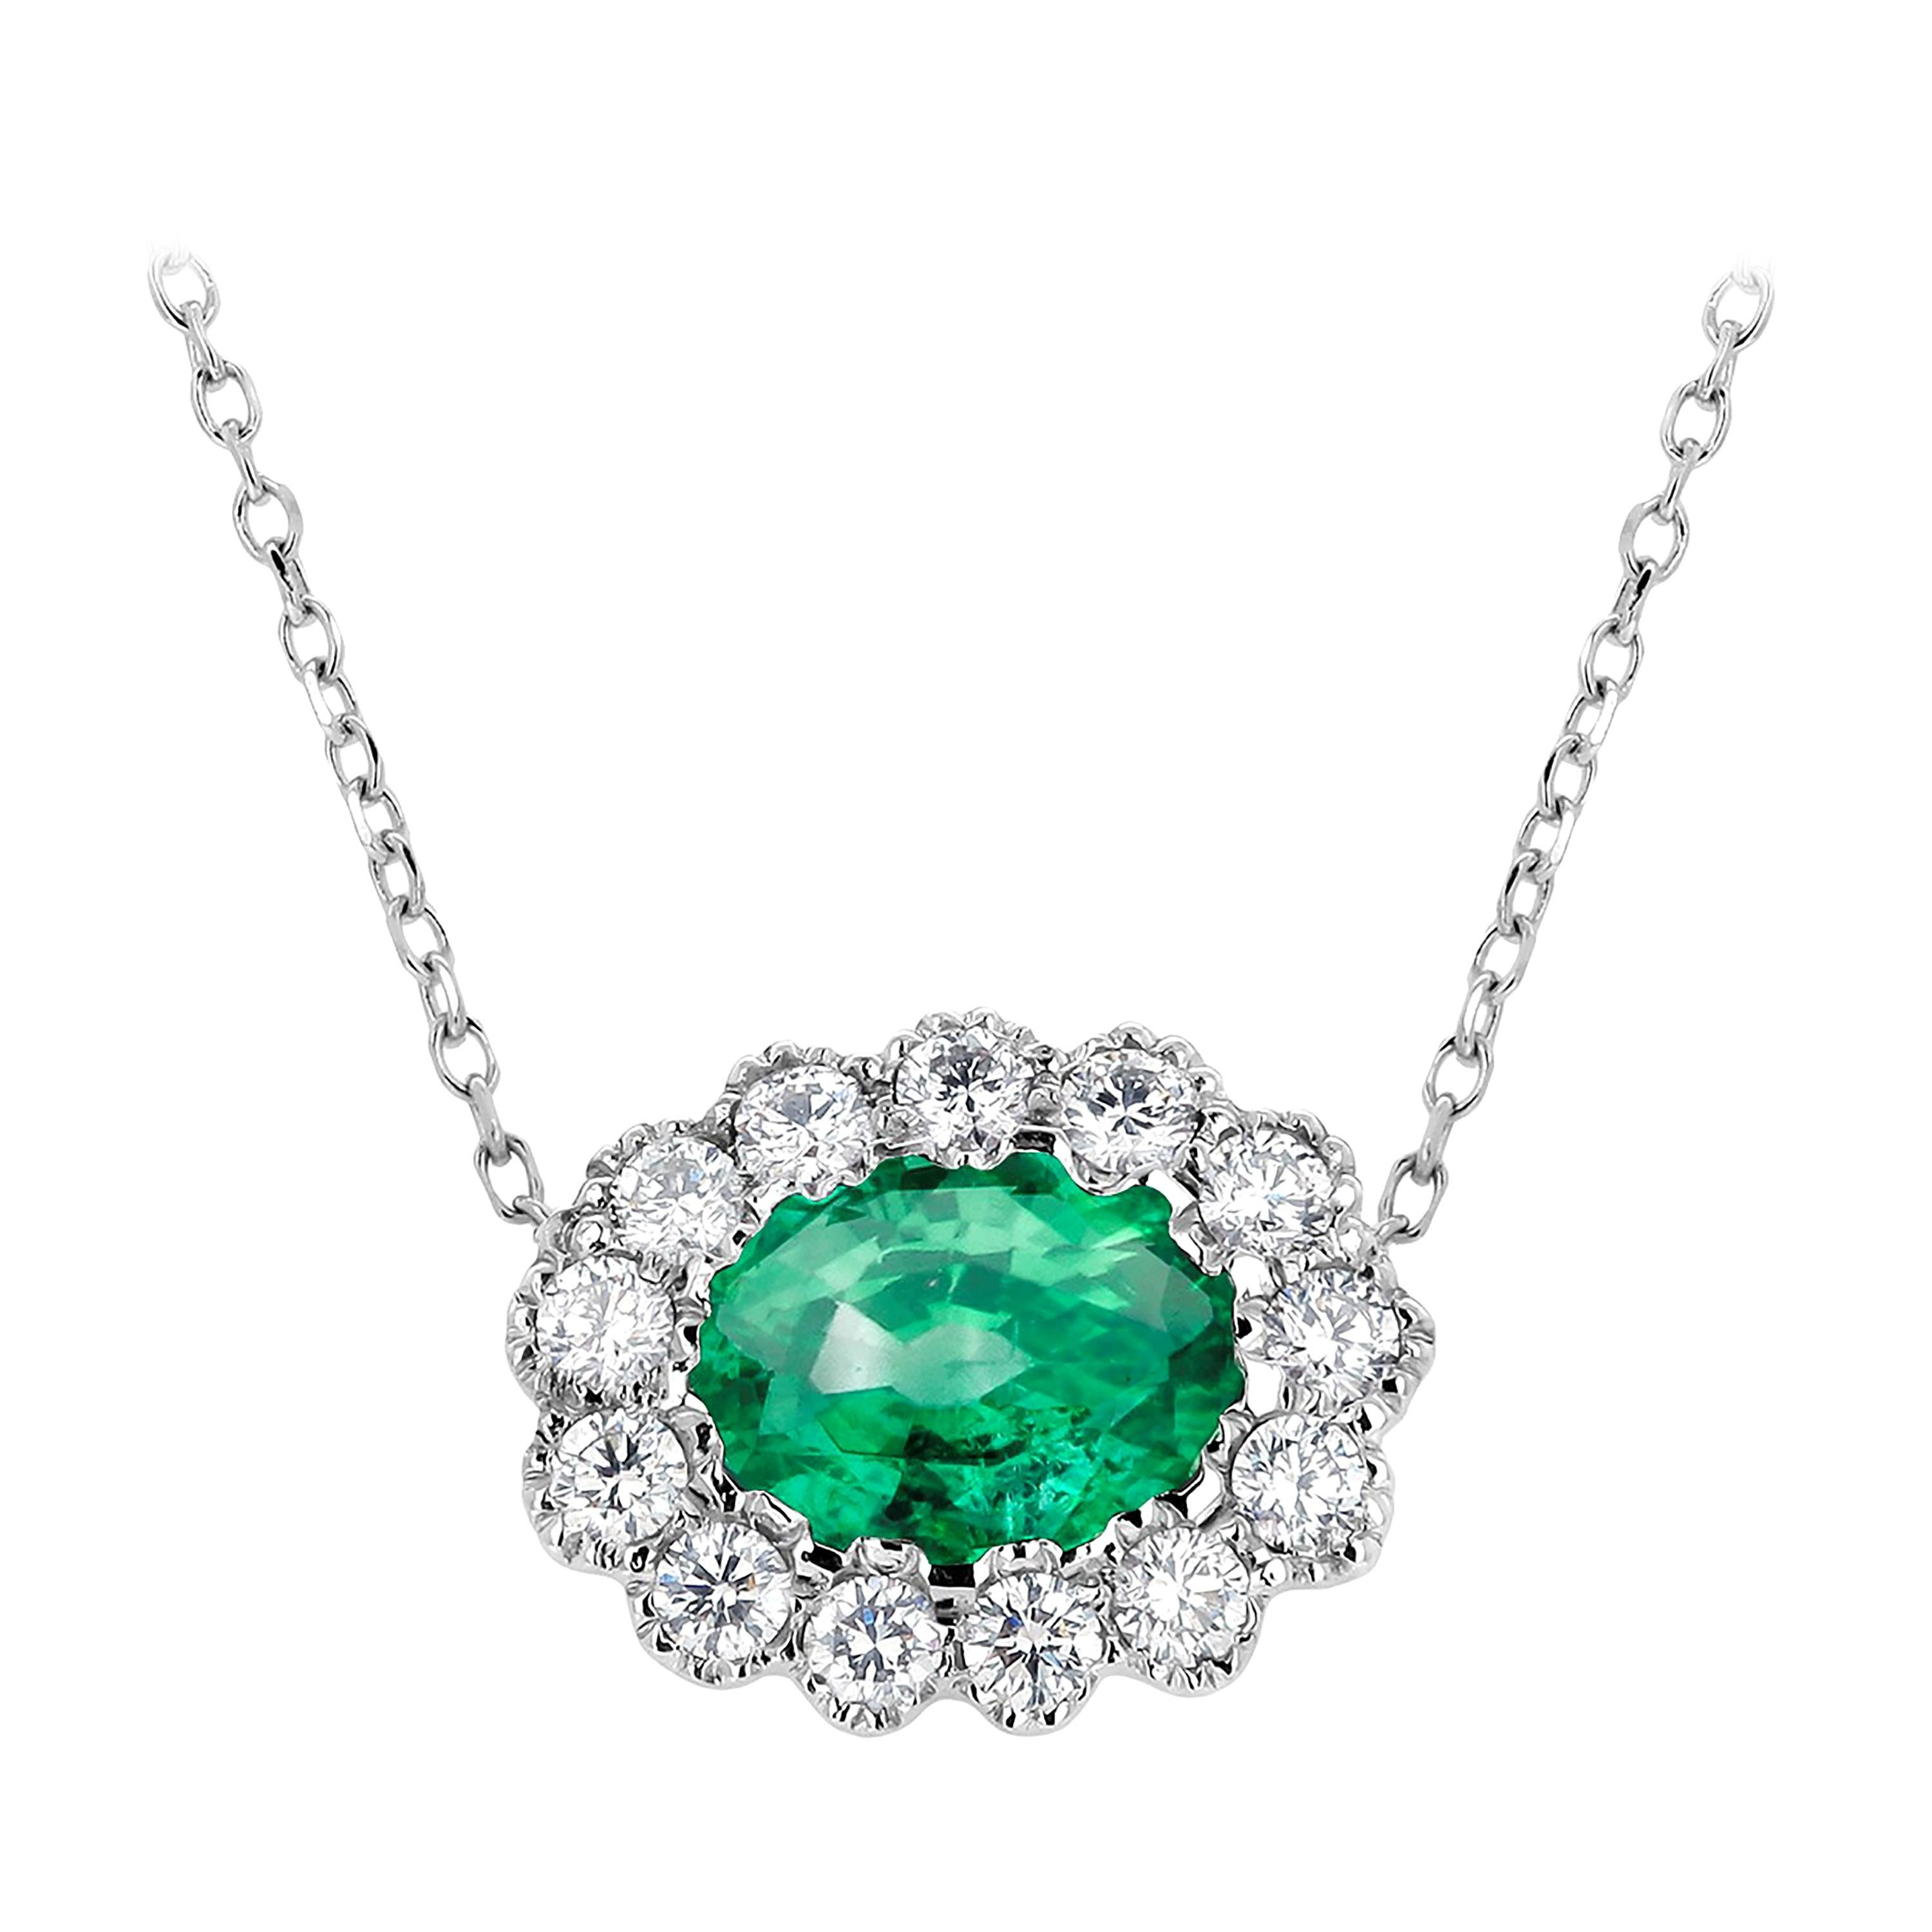 Oval Emerald Surrounded by Diamonds White Gold Drop Layered Necklace Pendant